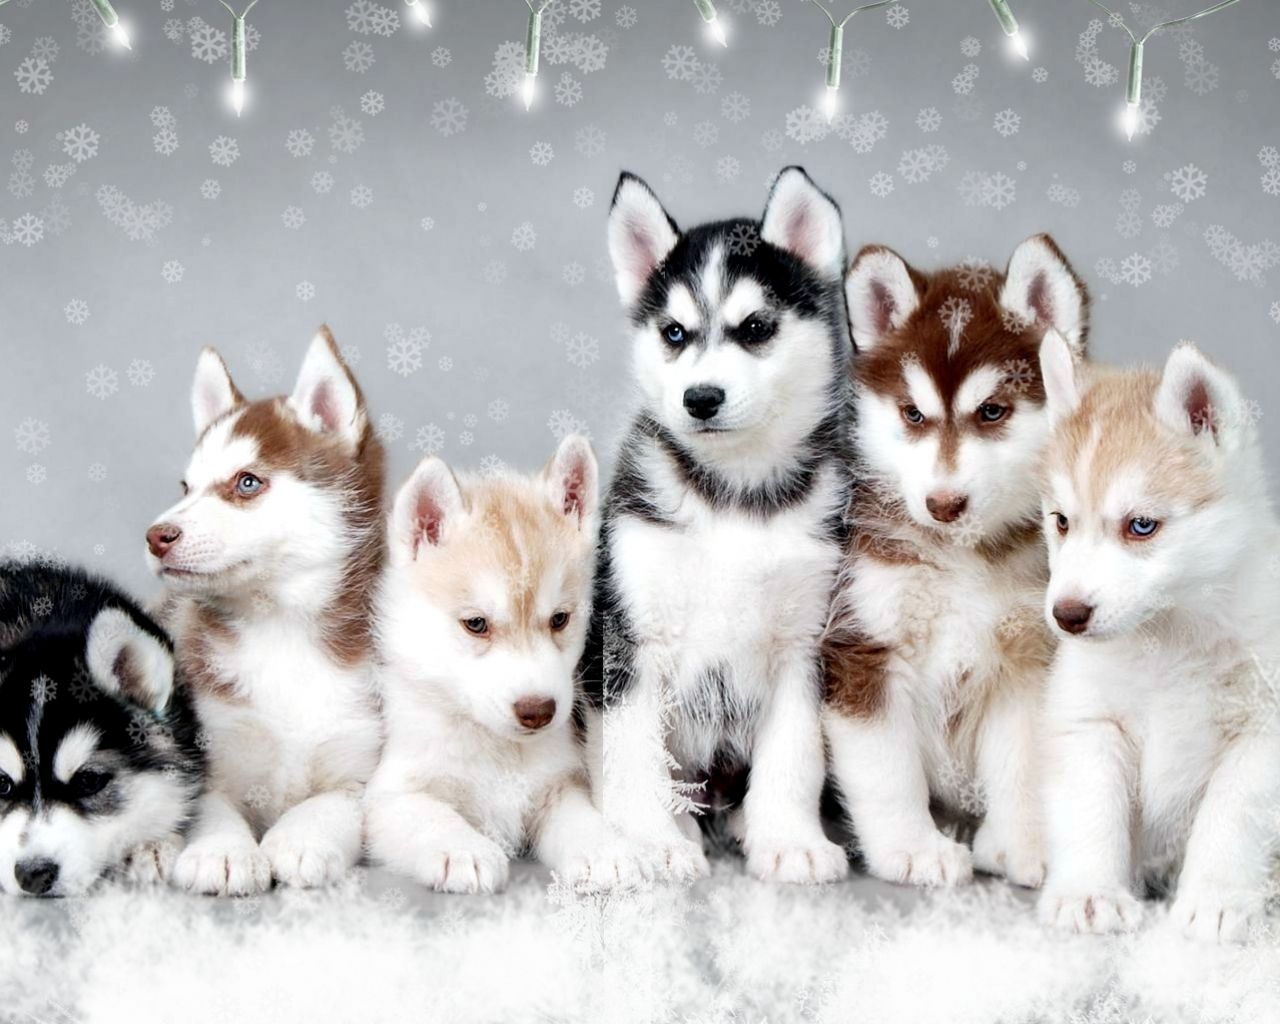 Baby Husky Dog Wallpaper For Android Cute Husky Puppy Dogs Wallpaper Pomsky Puppies Cute Dogs Cute Husky Puppies